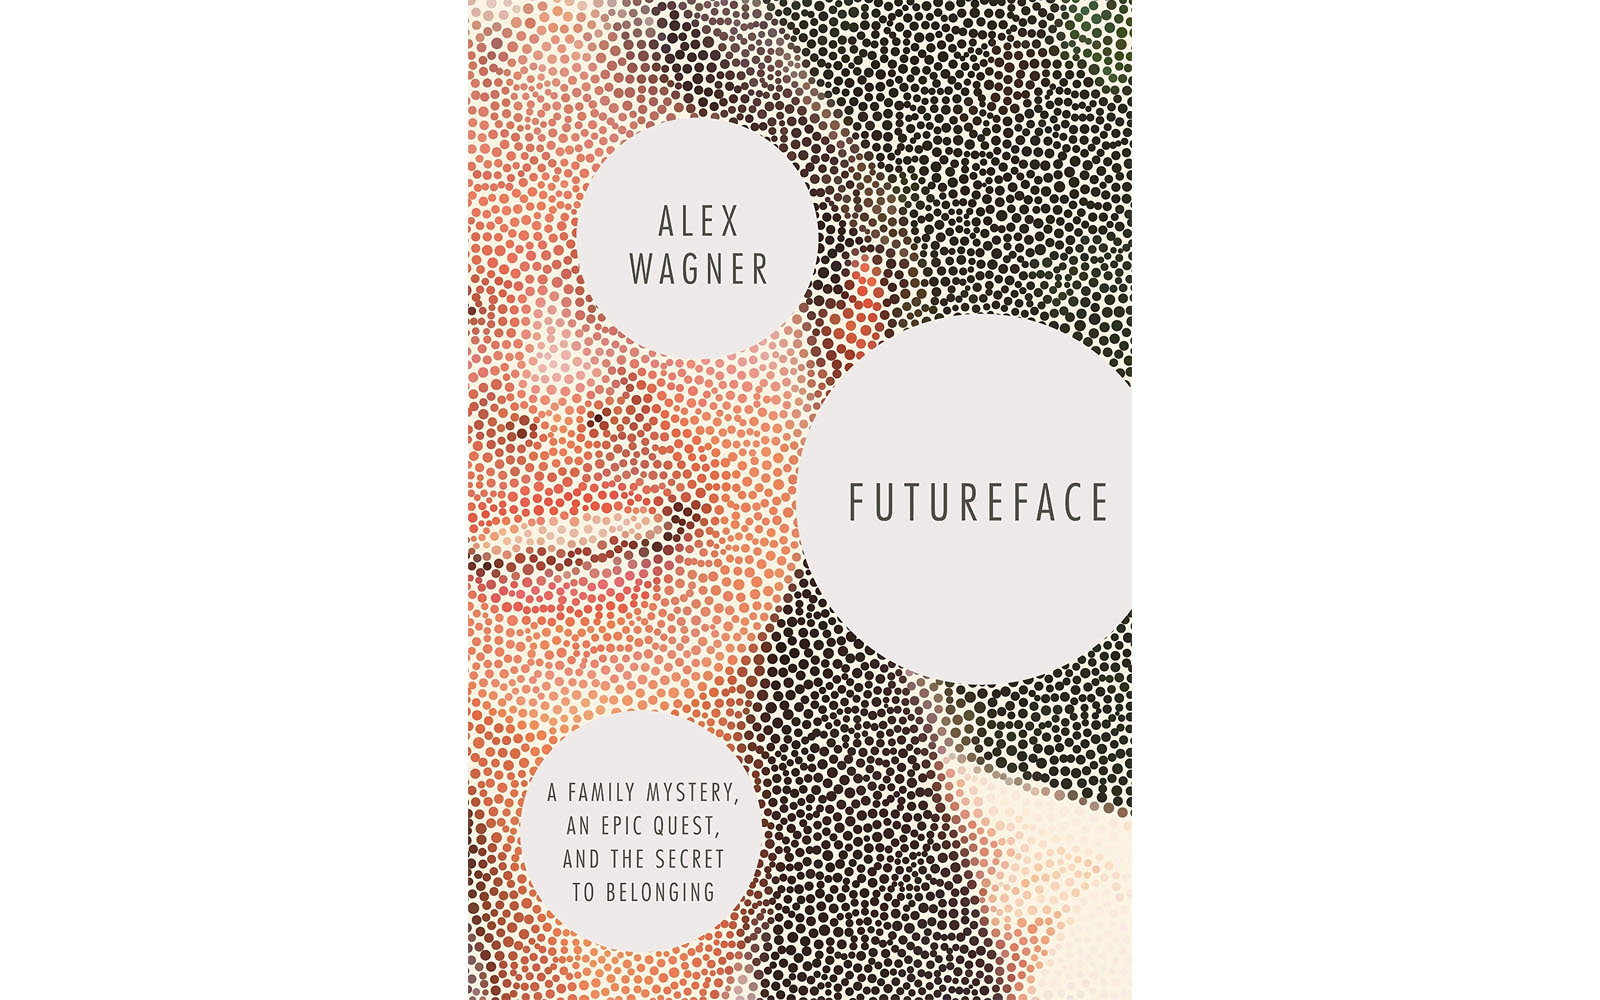 Futureface by Alex Wagner